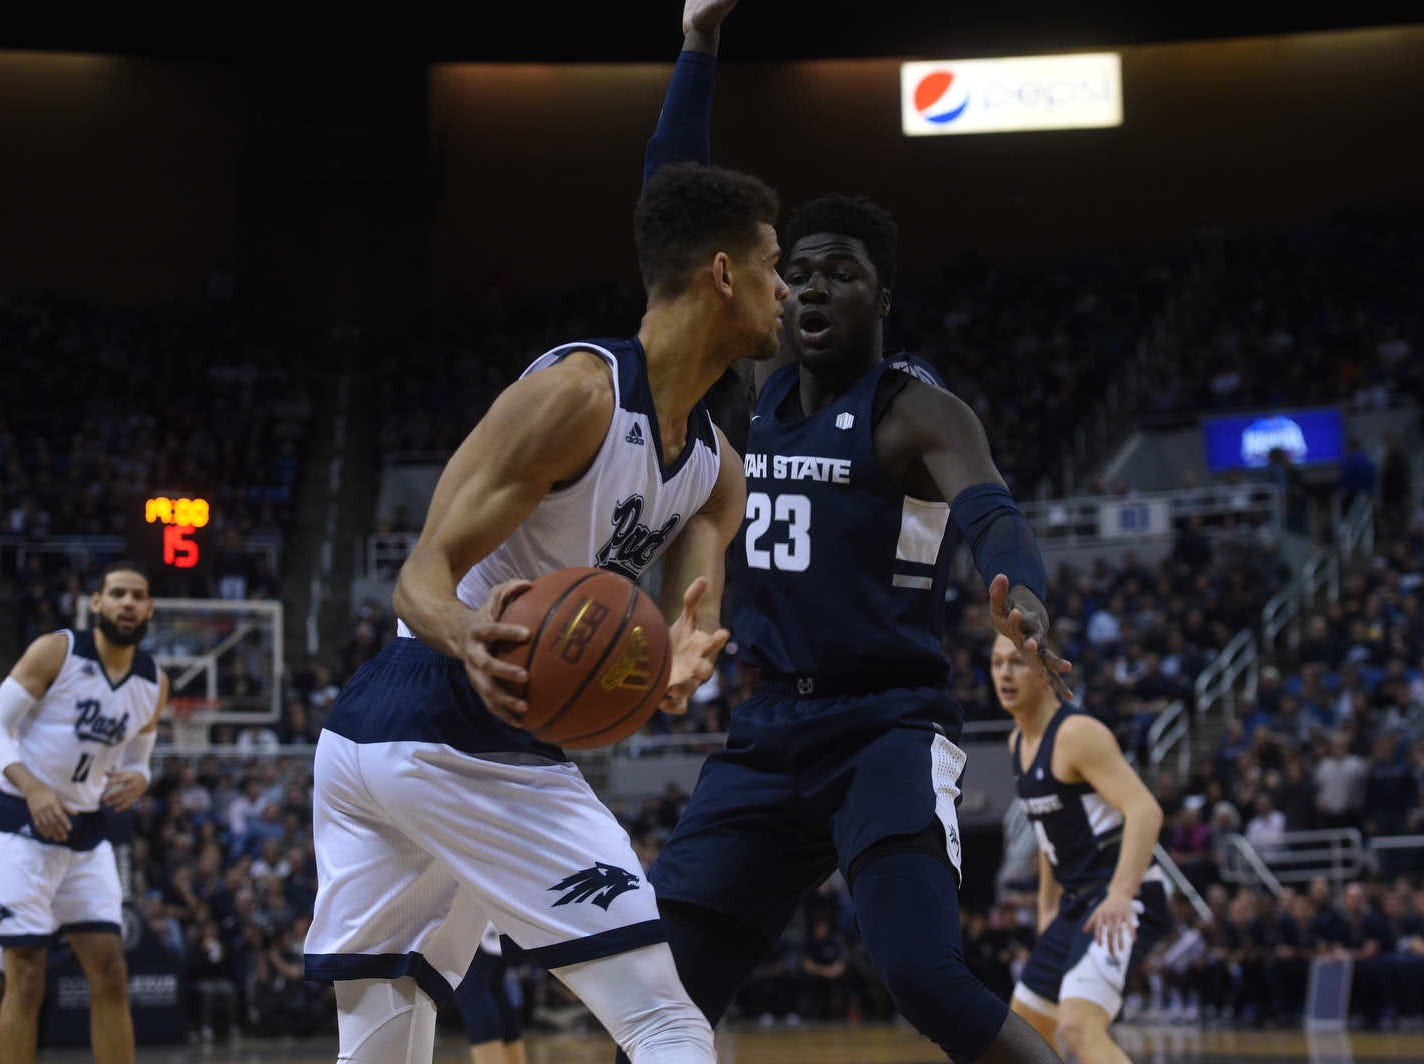 Nevada takes on Utah St. during their basketball game at Lawlor Events Center in Reno on Jan. 2, 2019.